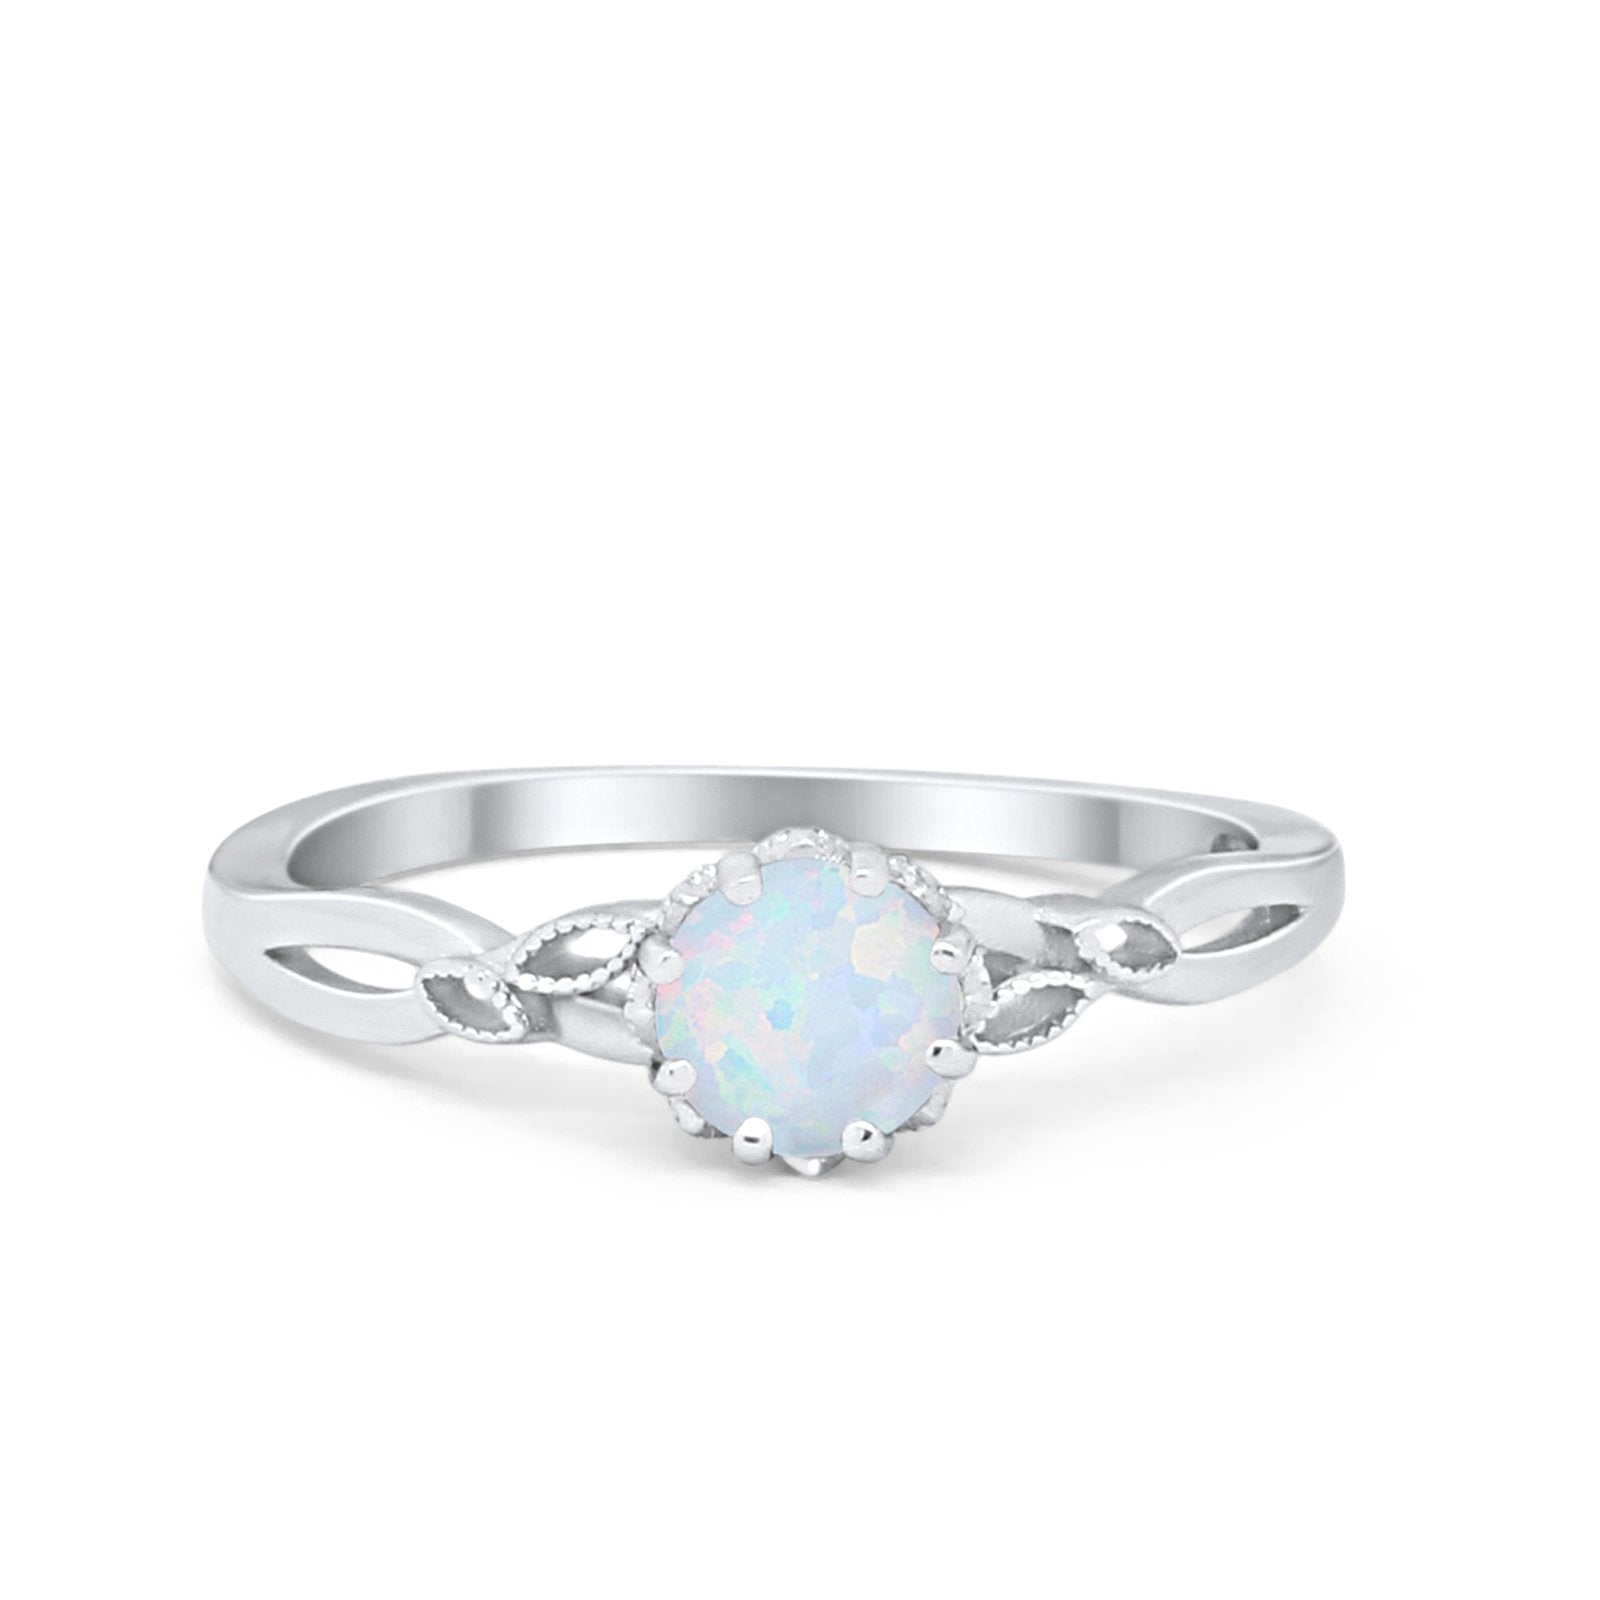 Art Deco Wedding Engagement Ring Round Cubic Zirconia 925 Sterling Silver Choose Color